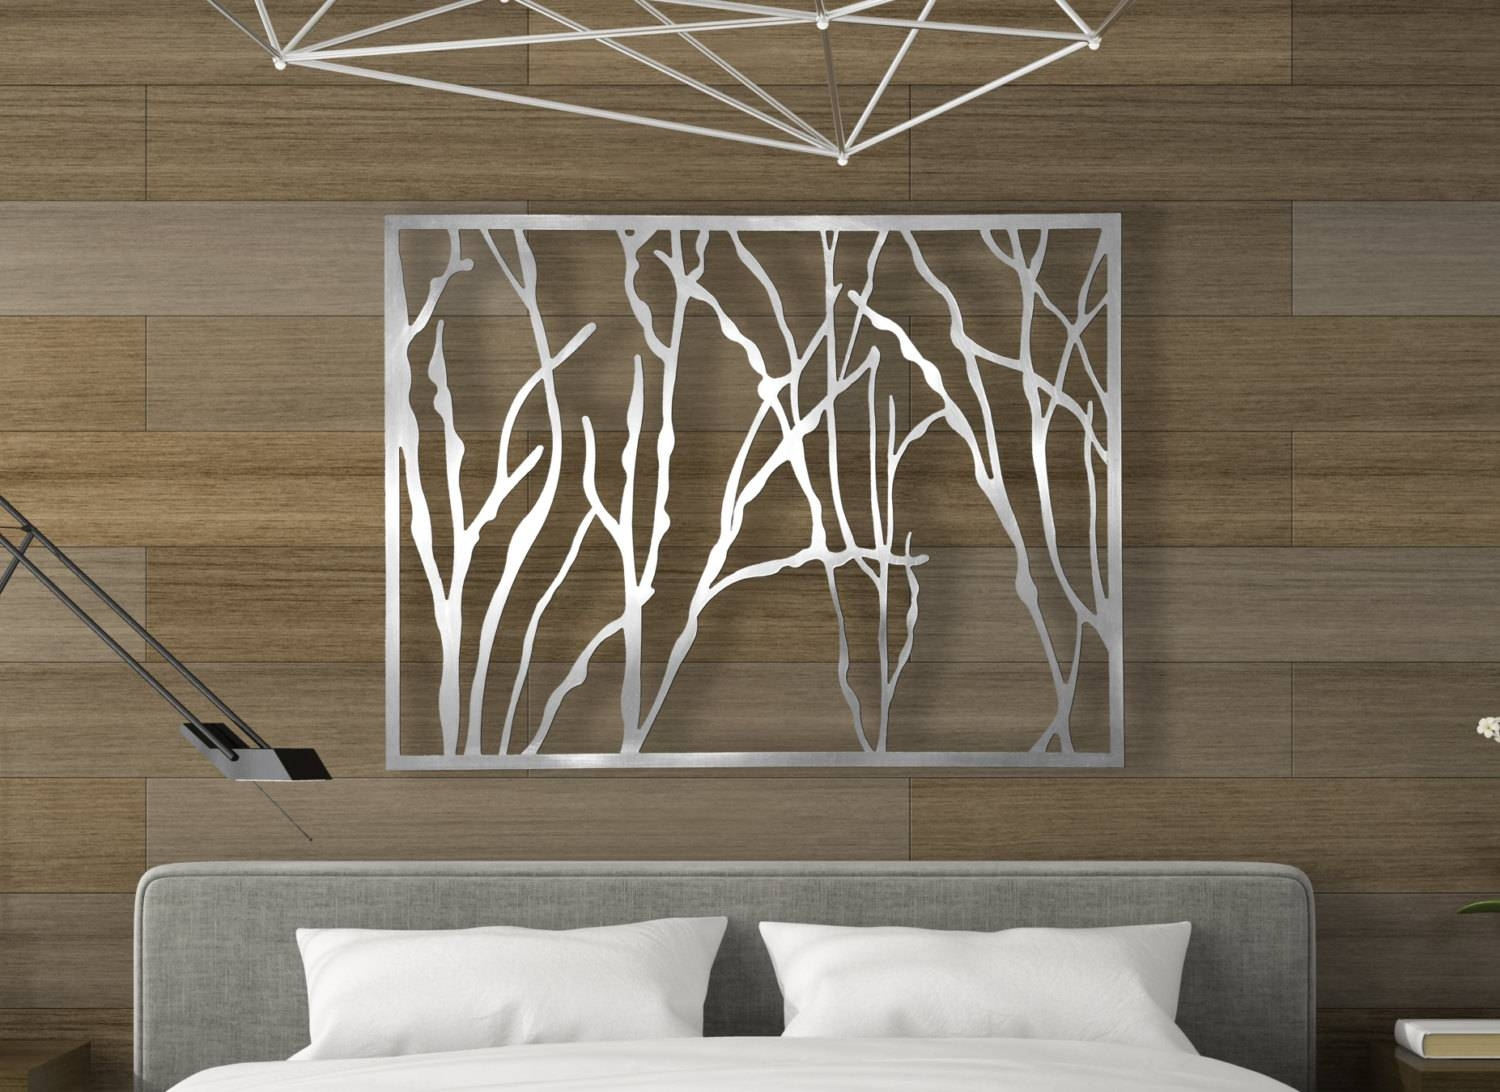 Laser Cut Wall Art Elegant As Canvas Wall Art On Wall Art Canvas Pertaining To Most Up To Date 3d Wall Art Canvas (View 11 of 20)